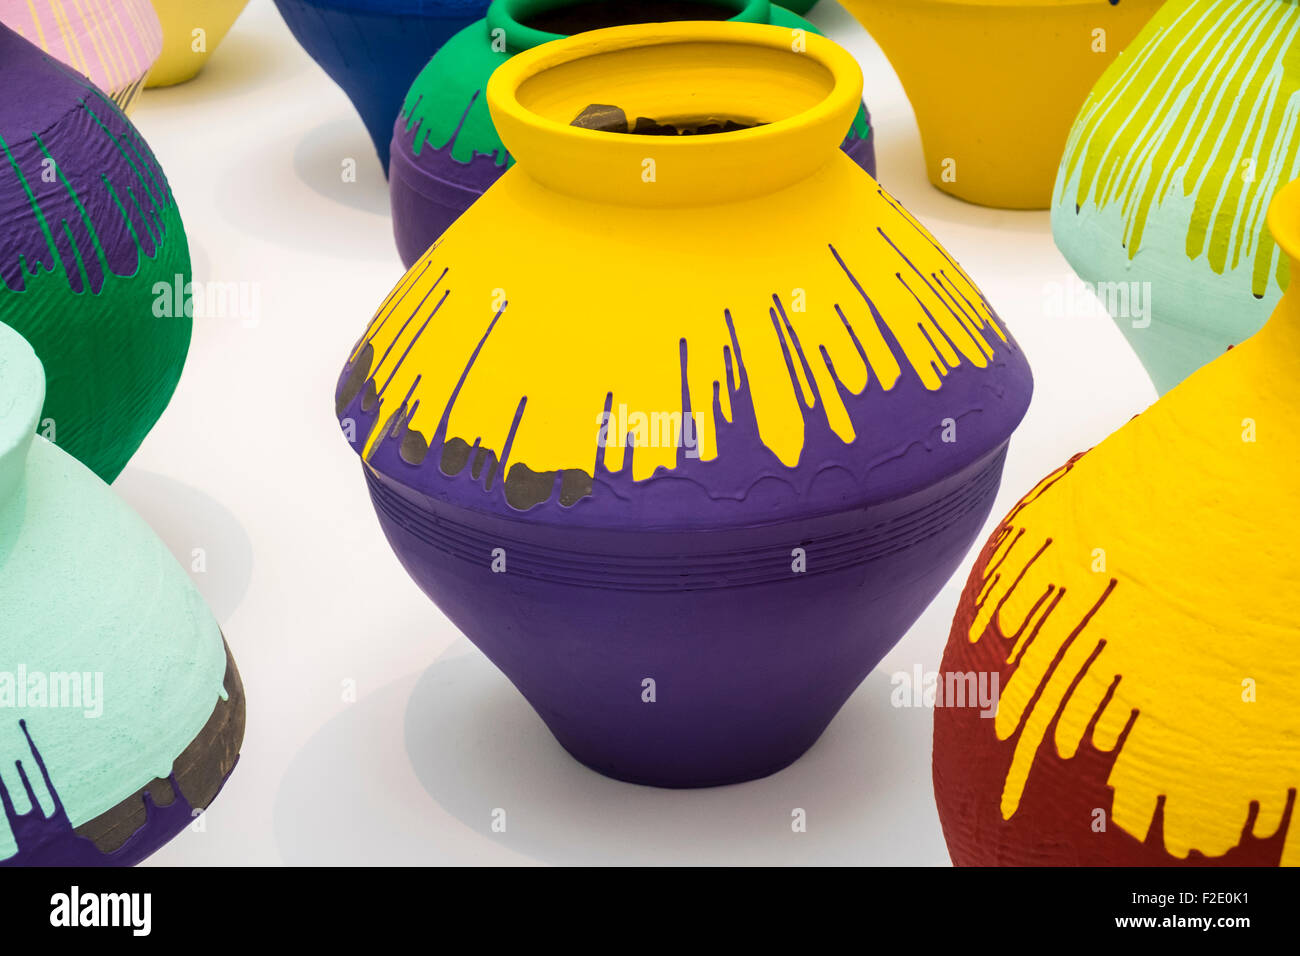 Ai Weiwei, Han Dynasty Vases with industrial paint at the Royal Academy of Arts Exhibition - Stock Image